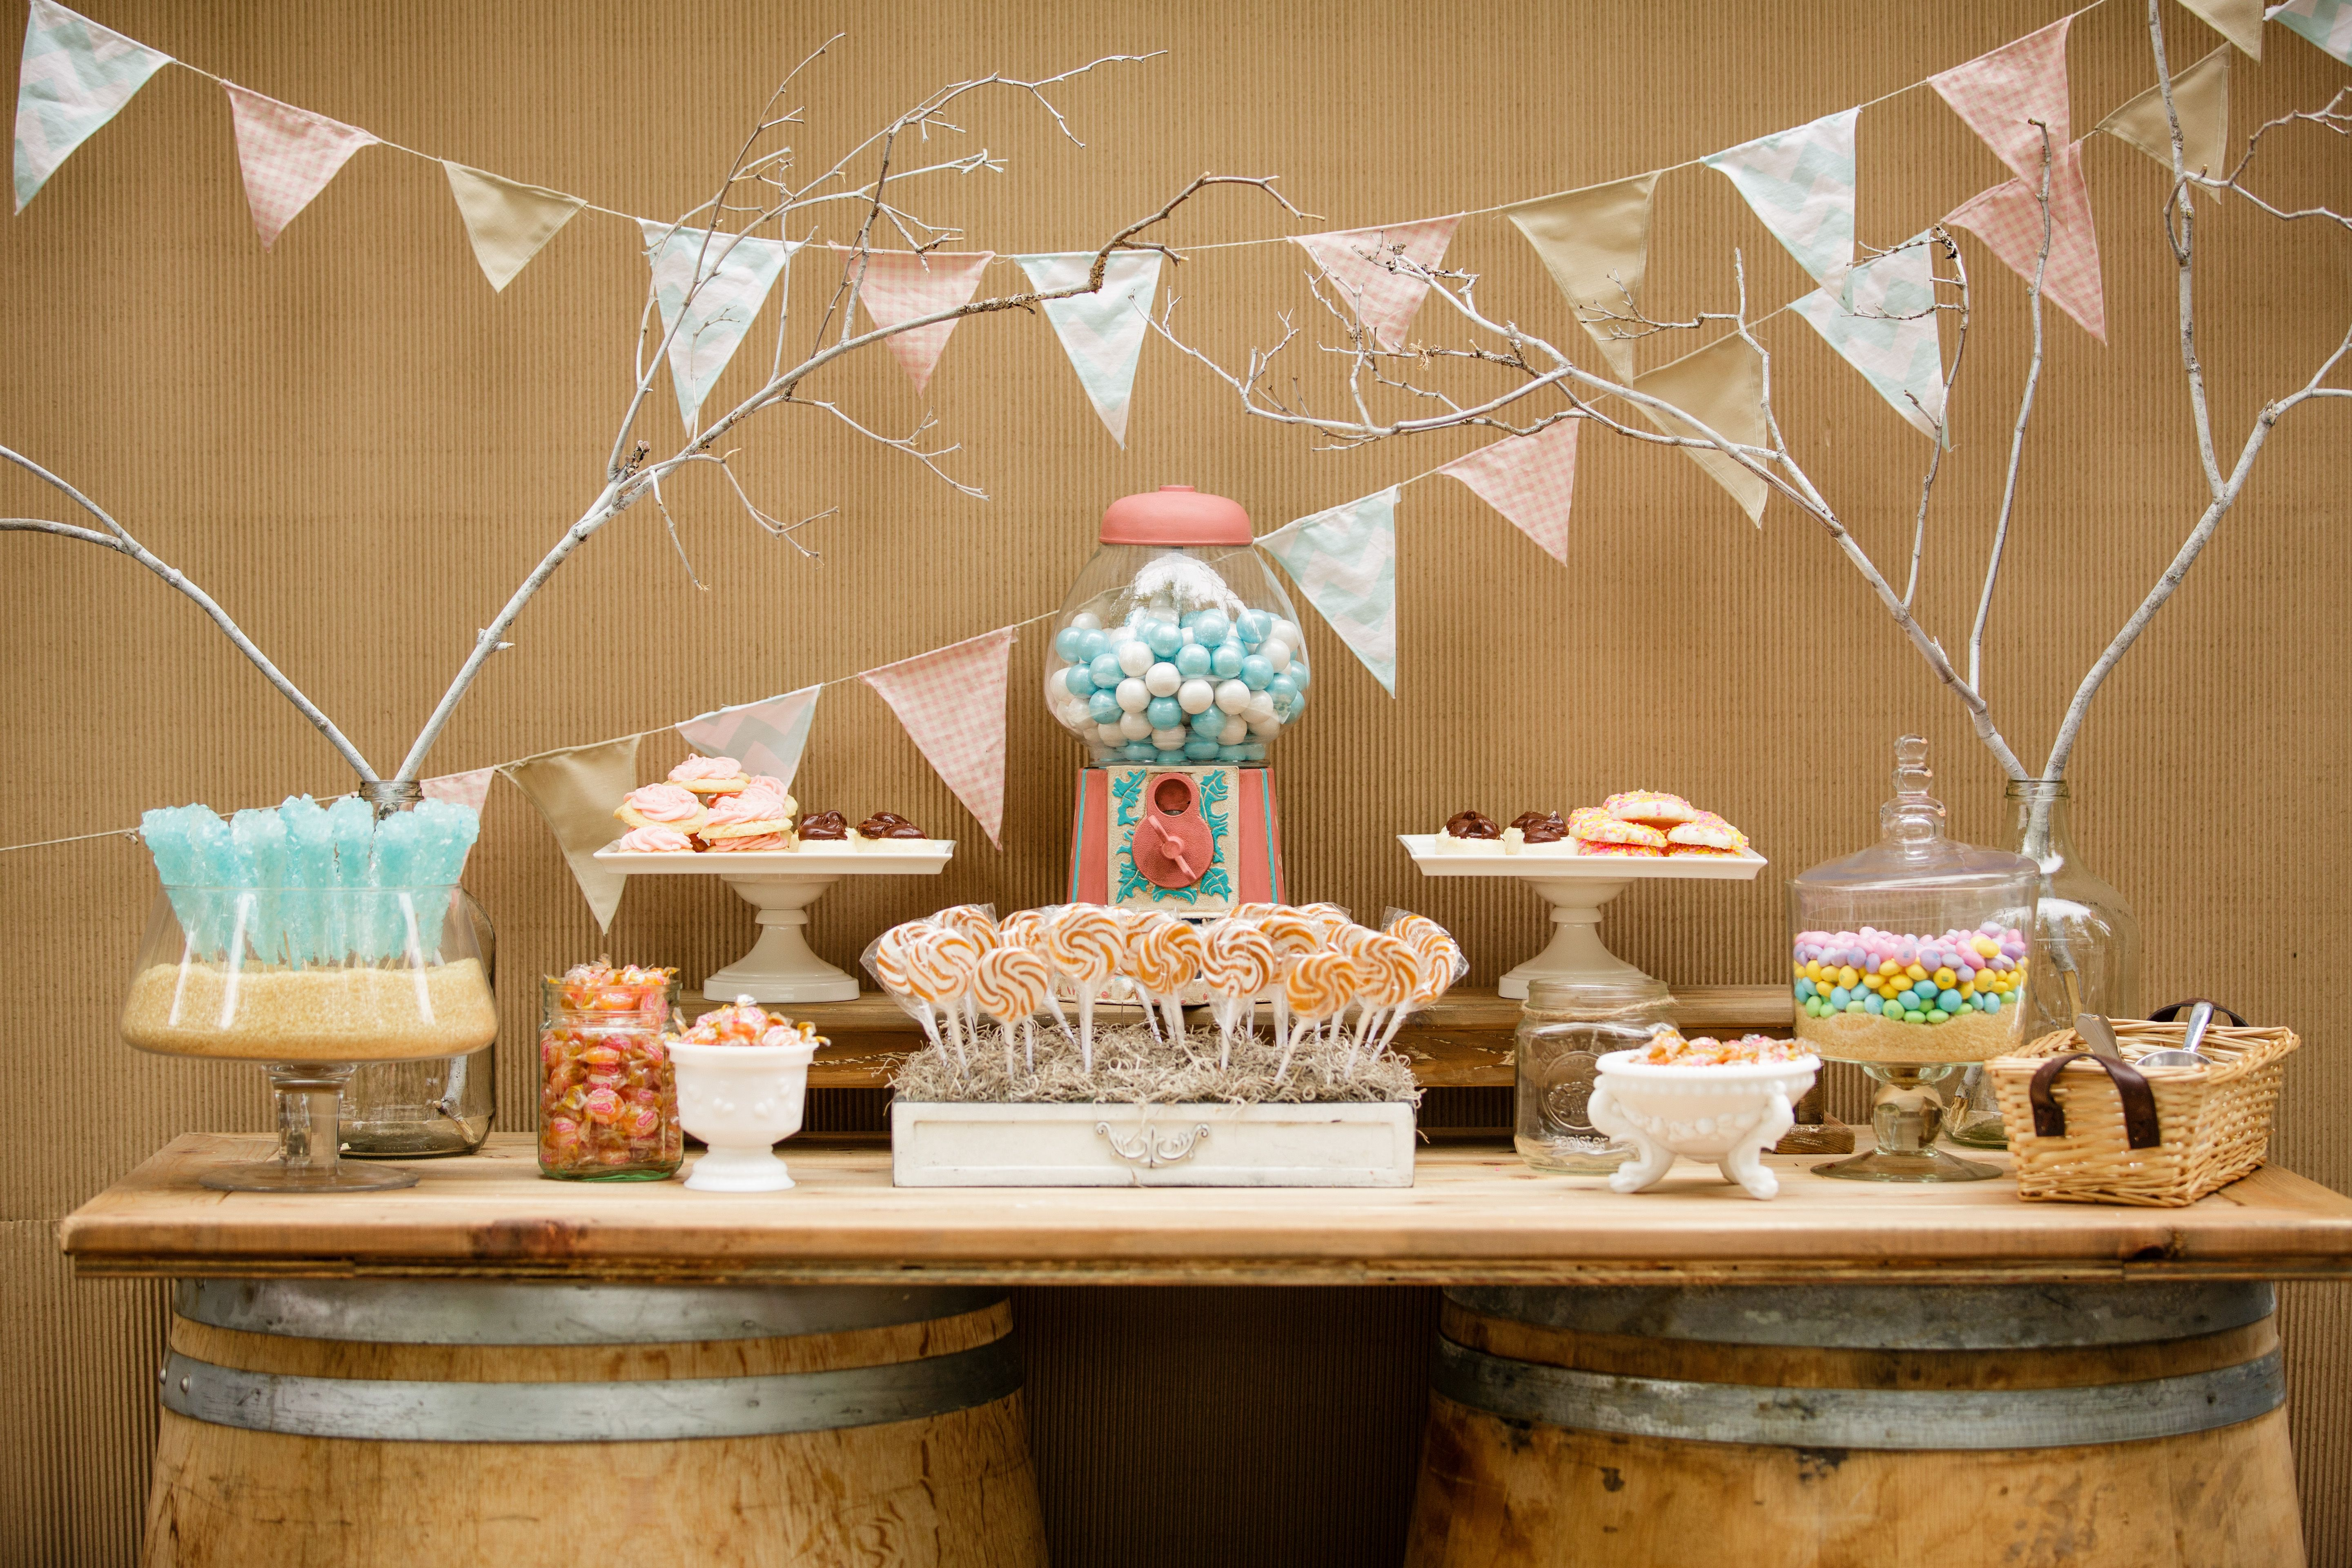 Candy table with a custom gumball machine decorative flags all in